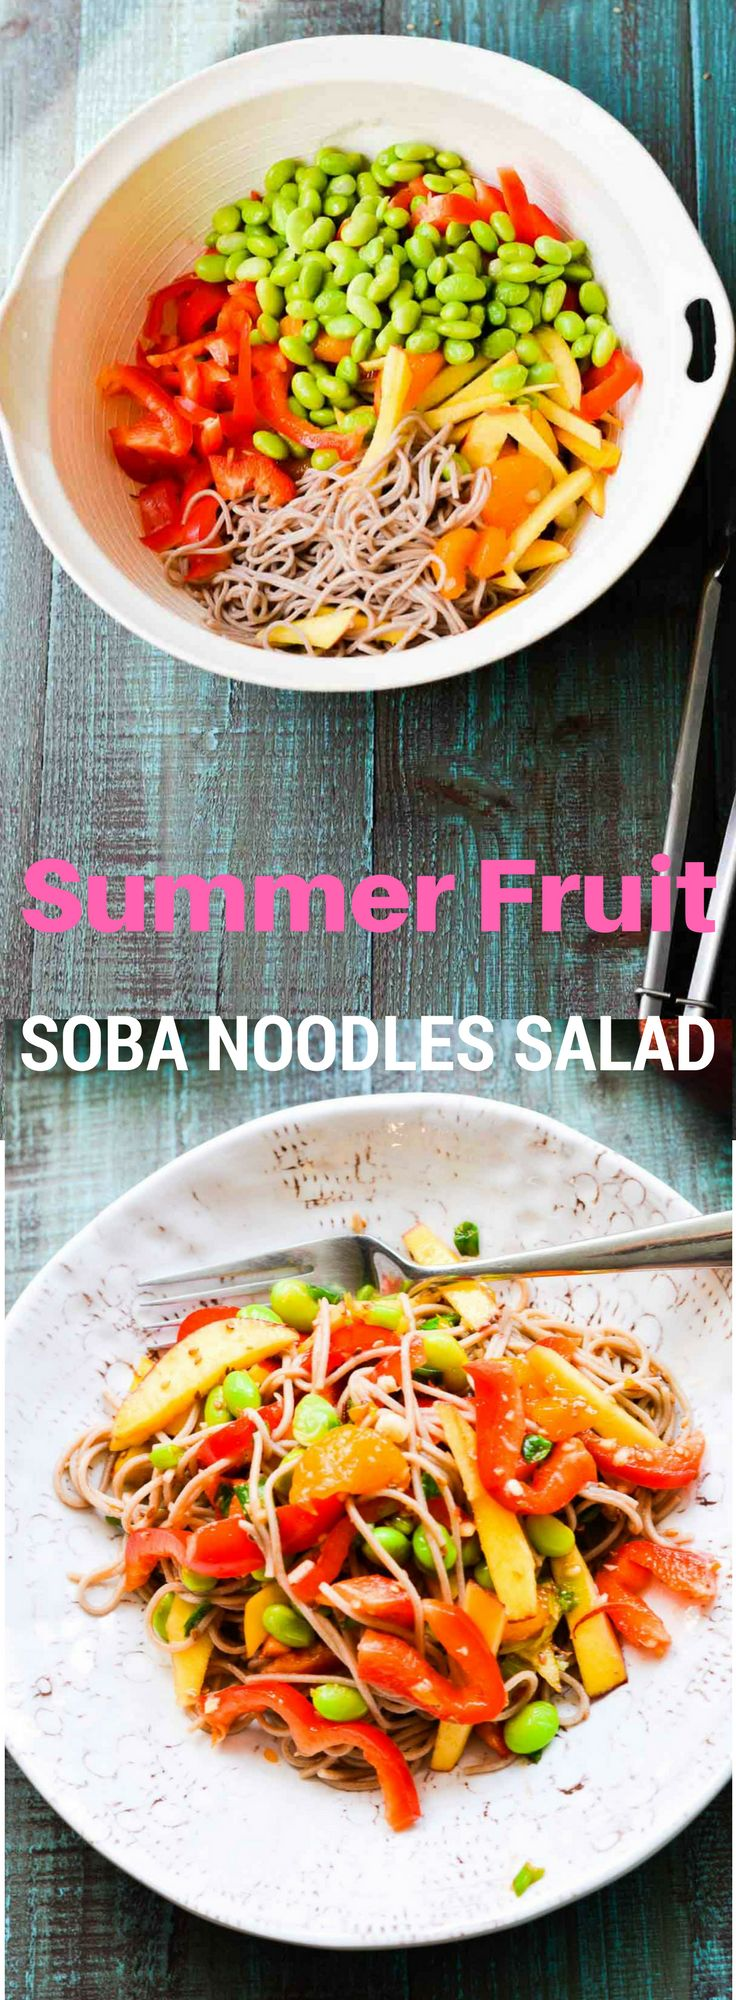 A refreshing noodle salad features edamame, nectarine, mandarin oranges, soba noodles and spicy sesame dressing. This  noodles salad has summer written all over it!! Addicting and satisfying!